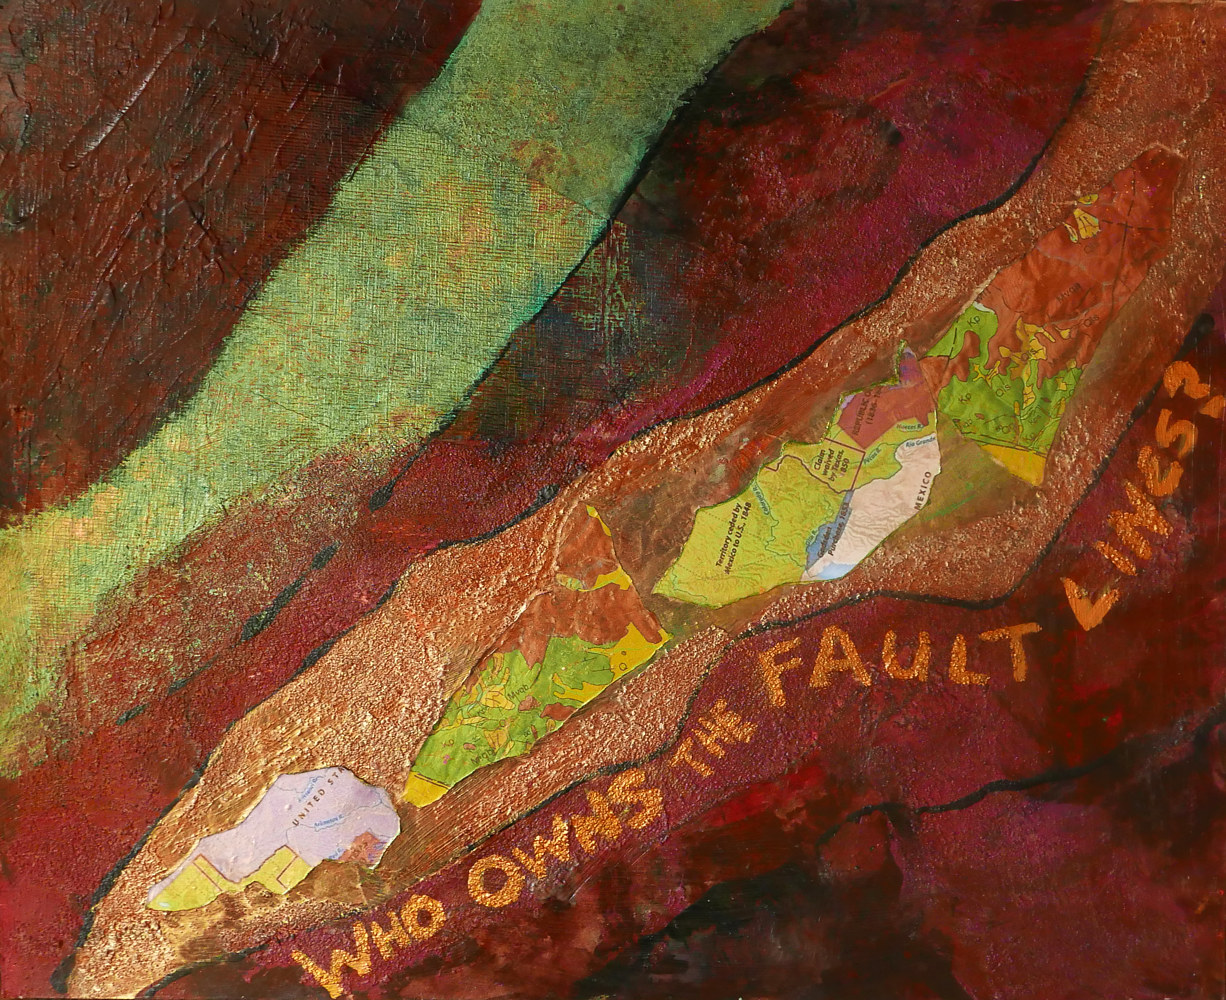 Mixed-media artwork Who Owns the Fault Lines by Pamela Pitt